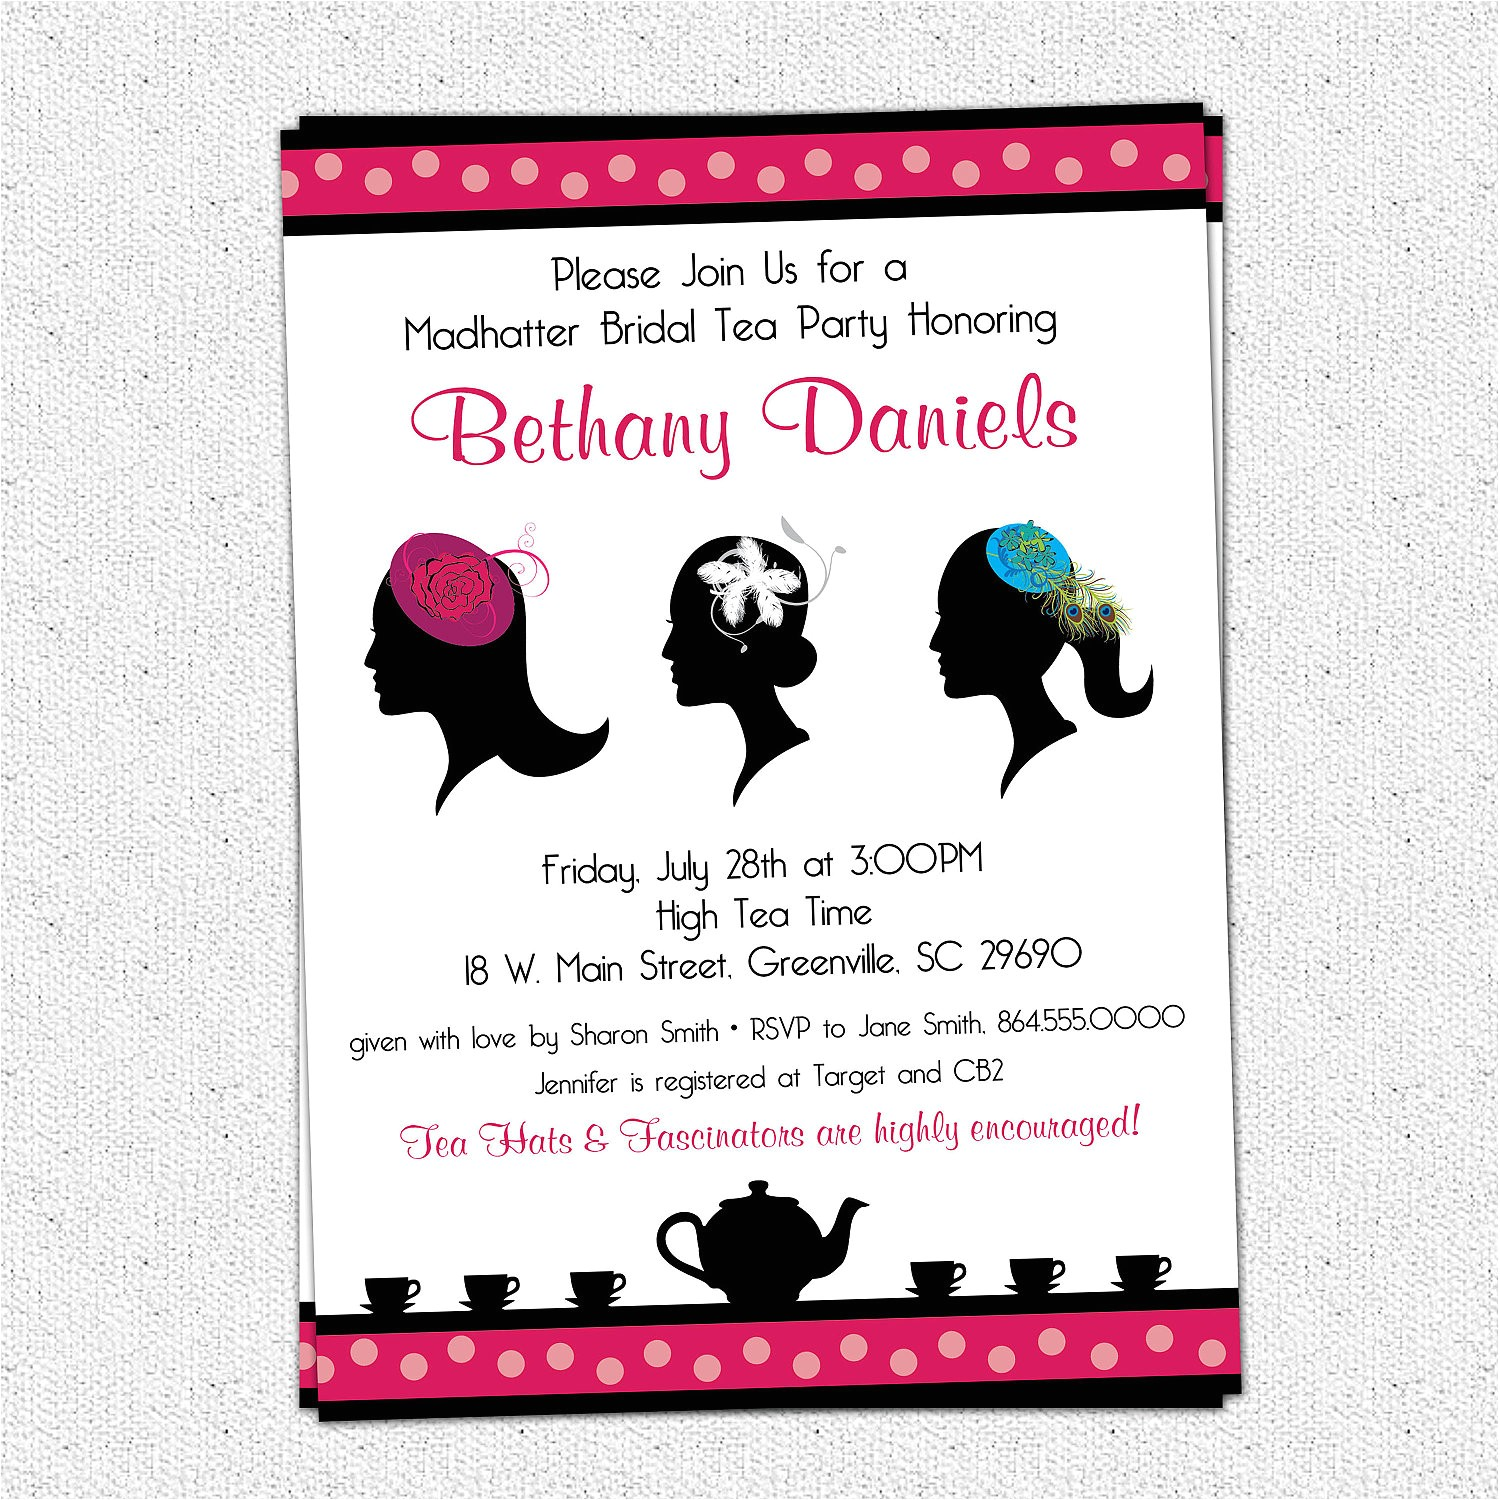 6809884 madhatter mad hatter tea party invitations fascinator hats royalty bridal